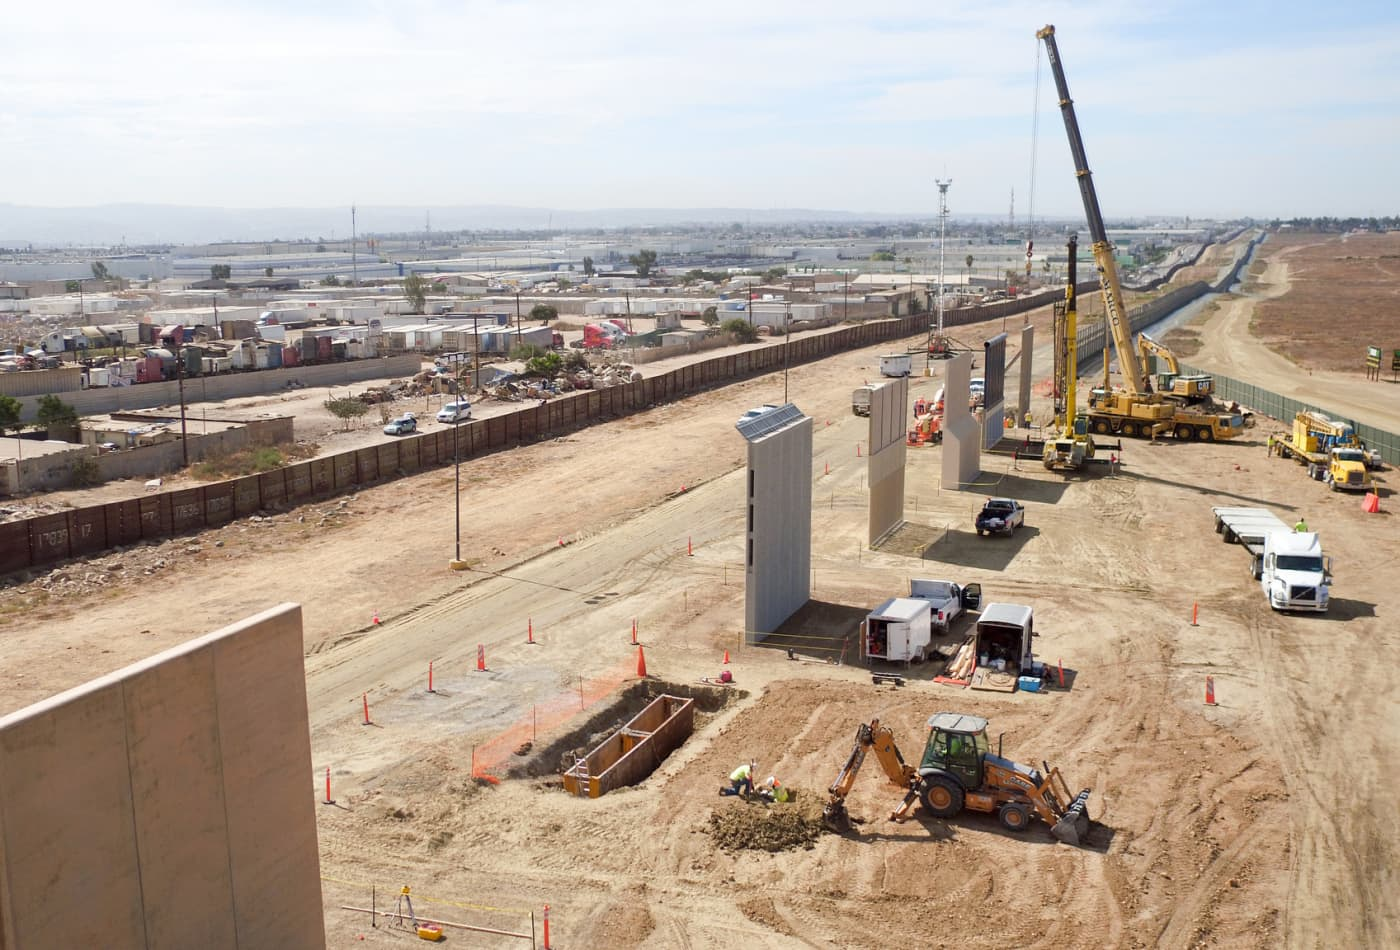 Trump's border wall could run overtime and over budget and perform below expectations: Watchdog report